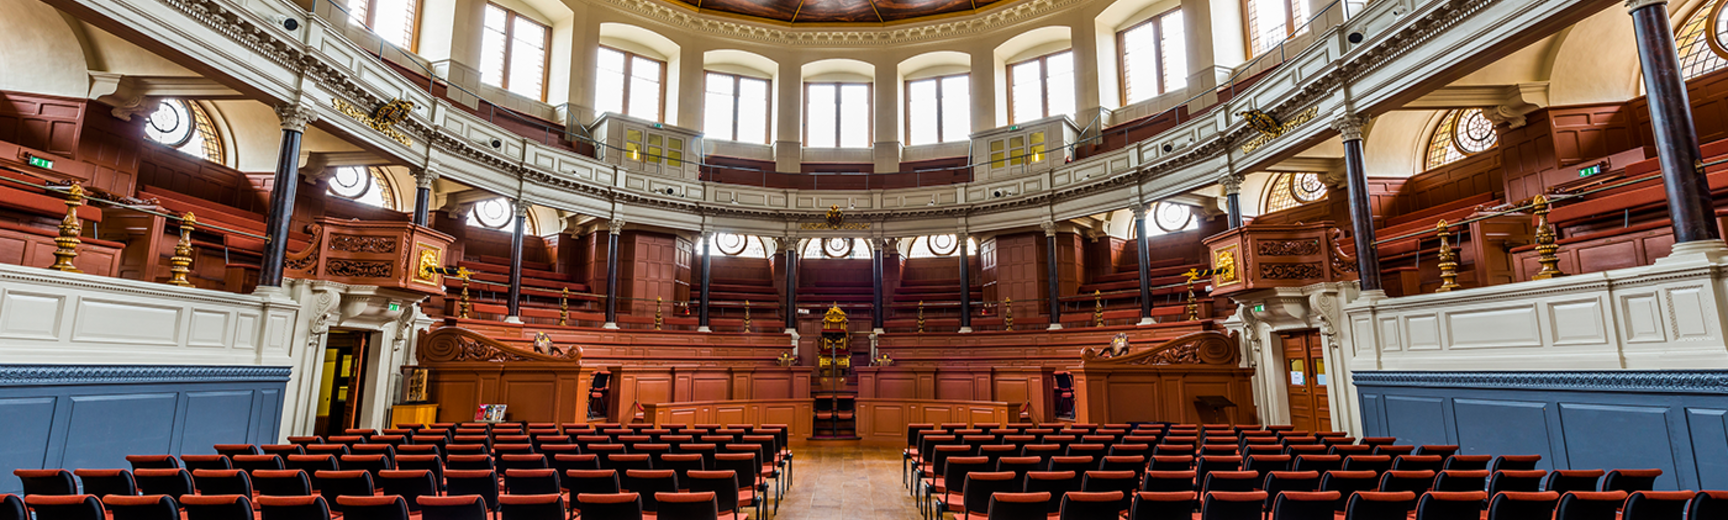 Image of Sheldonian concert layout, chair placed in the line